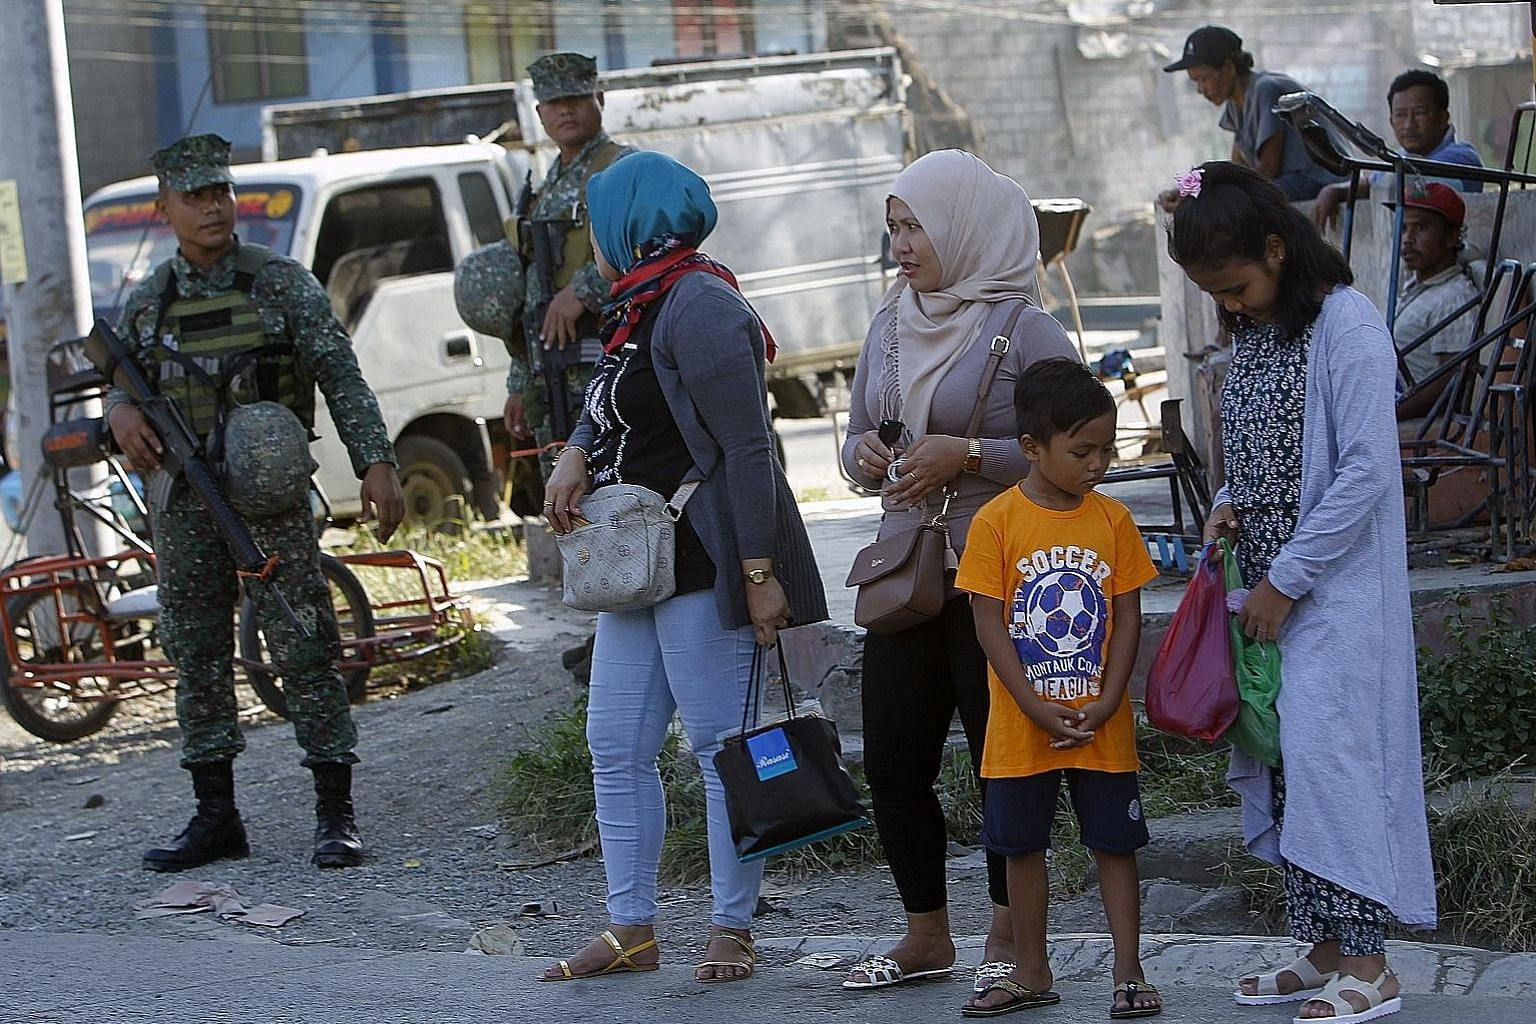 Filipino soldiers standing guard in Zamboanga city in southern Philippines last month. President Rodrigo Duterte has signed the Bangsamoro Organic Law, paving the way for the creation of a Muslim-majority autonomous entity in Mindanao and bringing pe